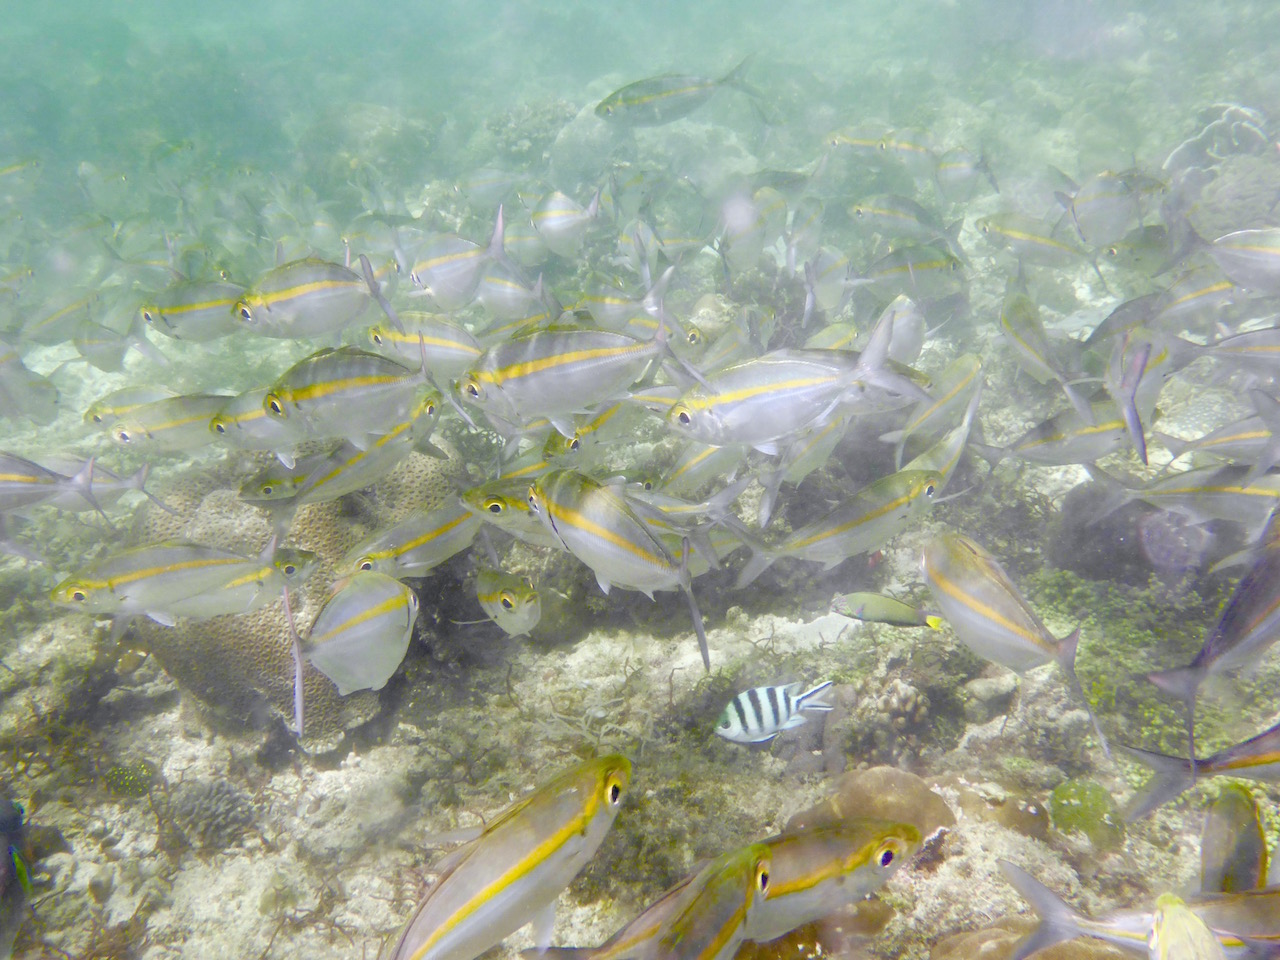 Convict tang amidst a school of yellow lined snappers.Photo: Vlademer Laloy